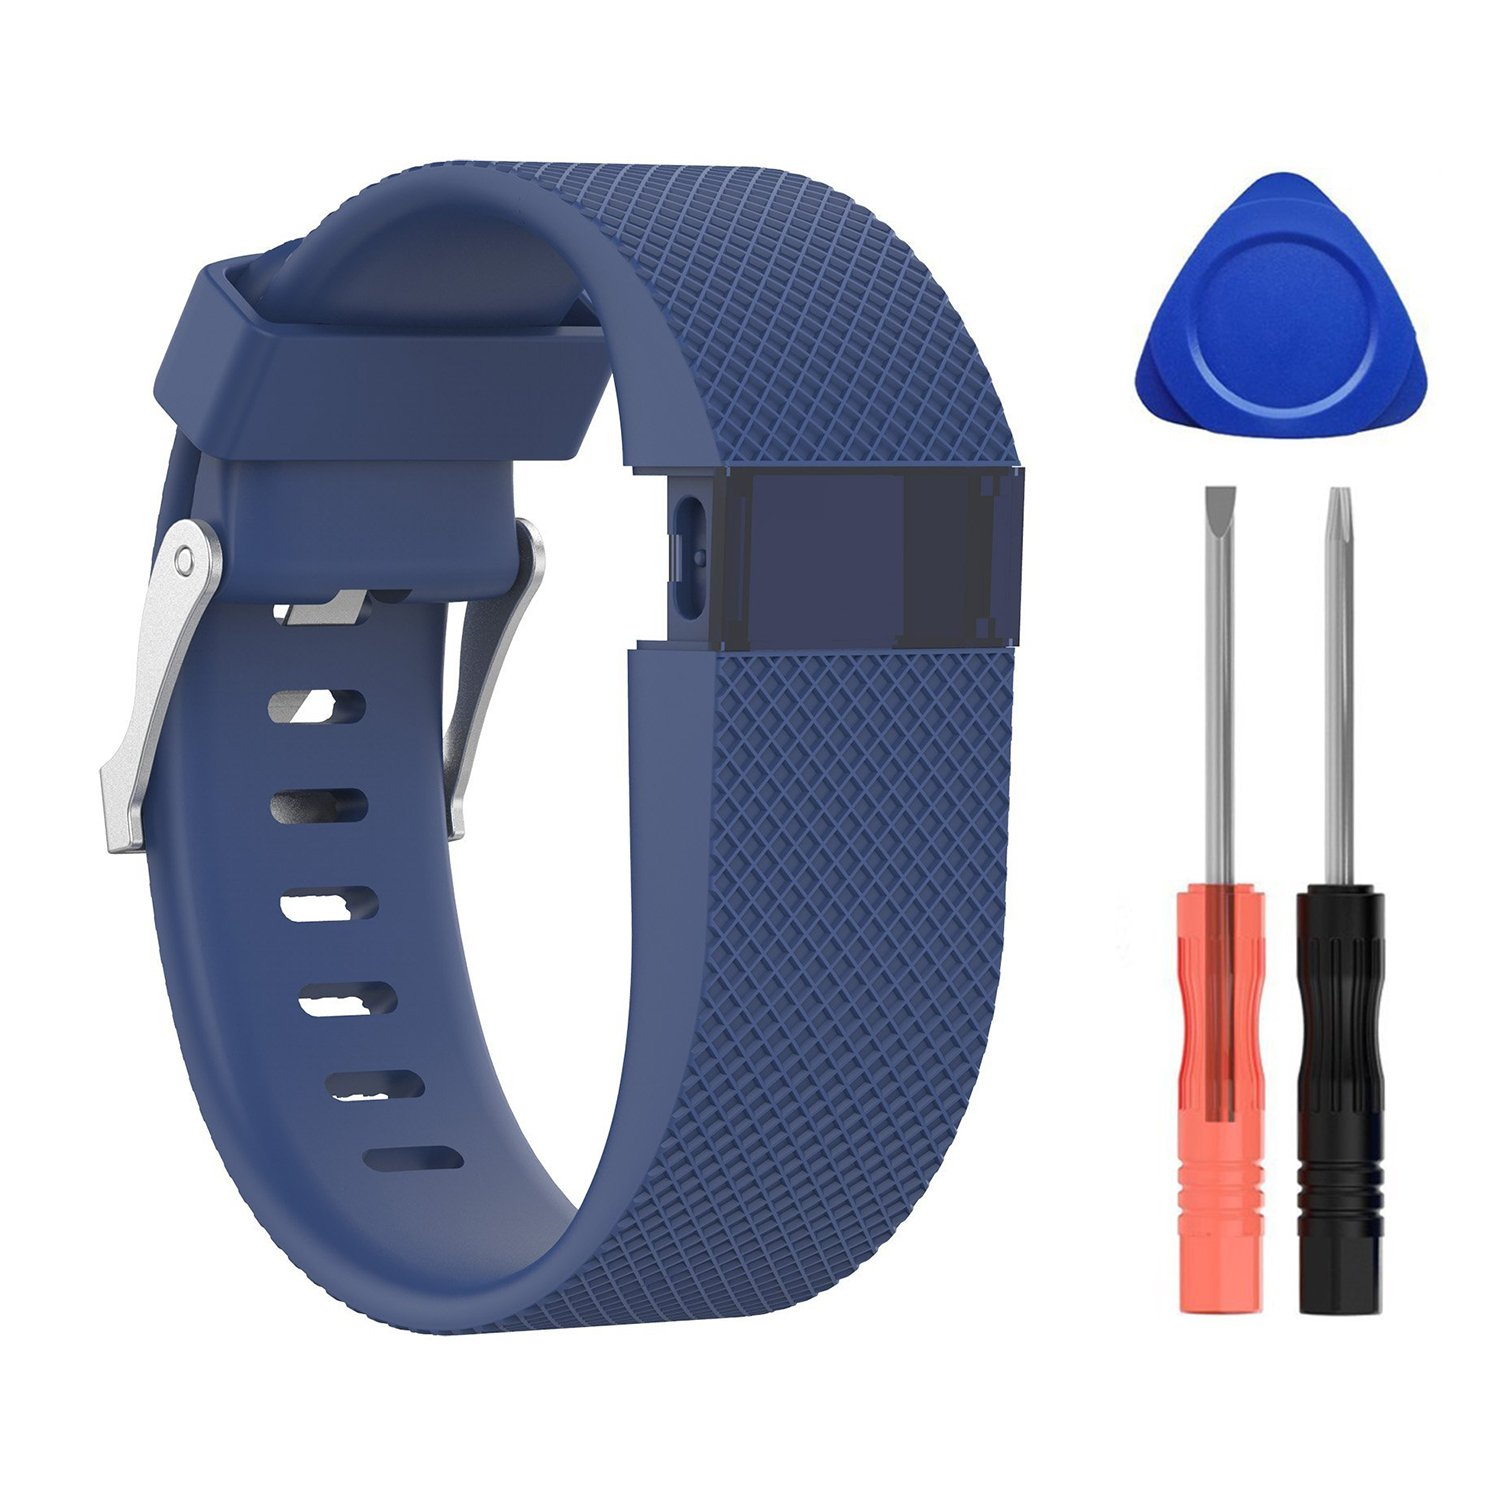 Fitbit Charge HR Bands,Sepcial Colorful Edition Soft Silicone Adjustable Replacement Wristband with Metal Buckle Clasp for Fitbit Charge HR Bands (Dark blue, Large)